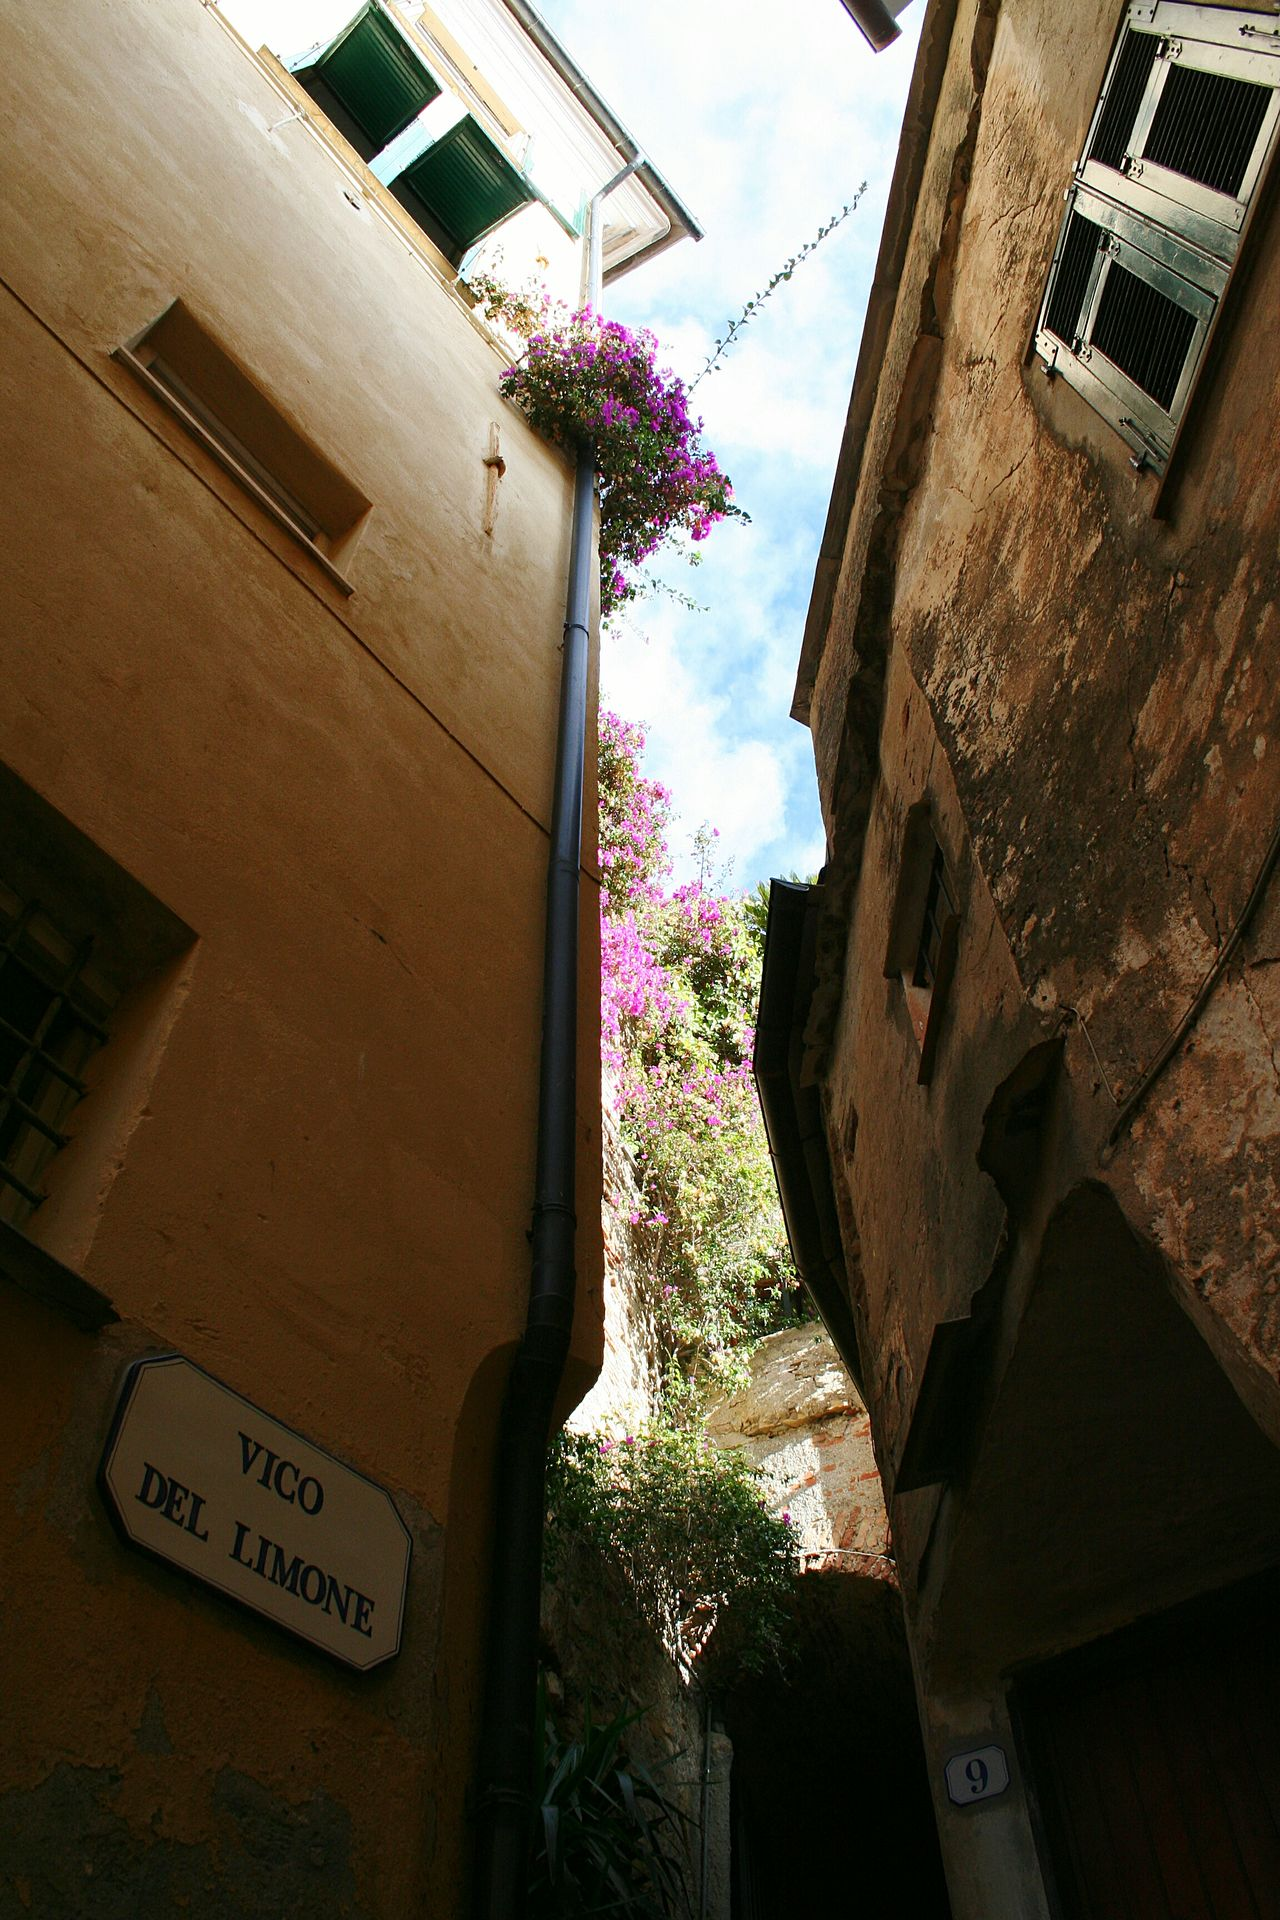 Built Structure Multi Colored Building Exterior Architecture Sky Outdoors Day Flower Mediterranean Mood Narrow Street Vicolo Del Paese Blooming In The Street Travel Tourism Cervo Ligure Growth Sunlight Travel Destinations Liguria,Italy Mediterranean Village Italian Village  Medieval Architectural Details Old Buildings EyeEmNewHere The City Light